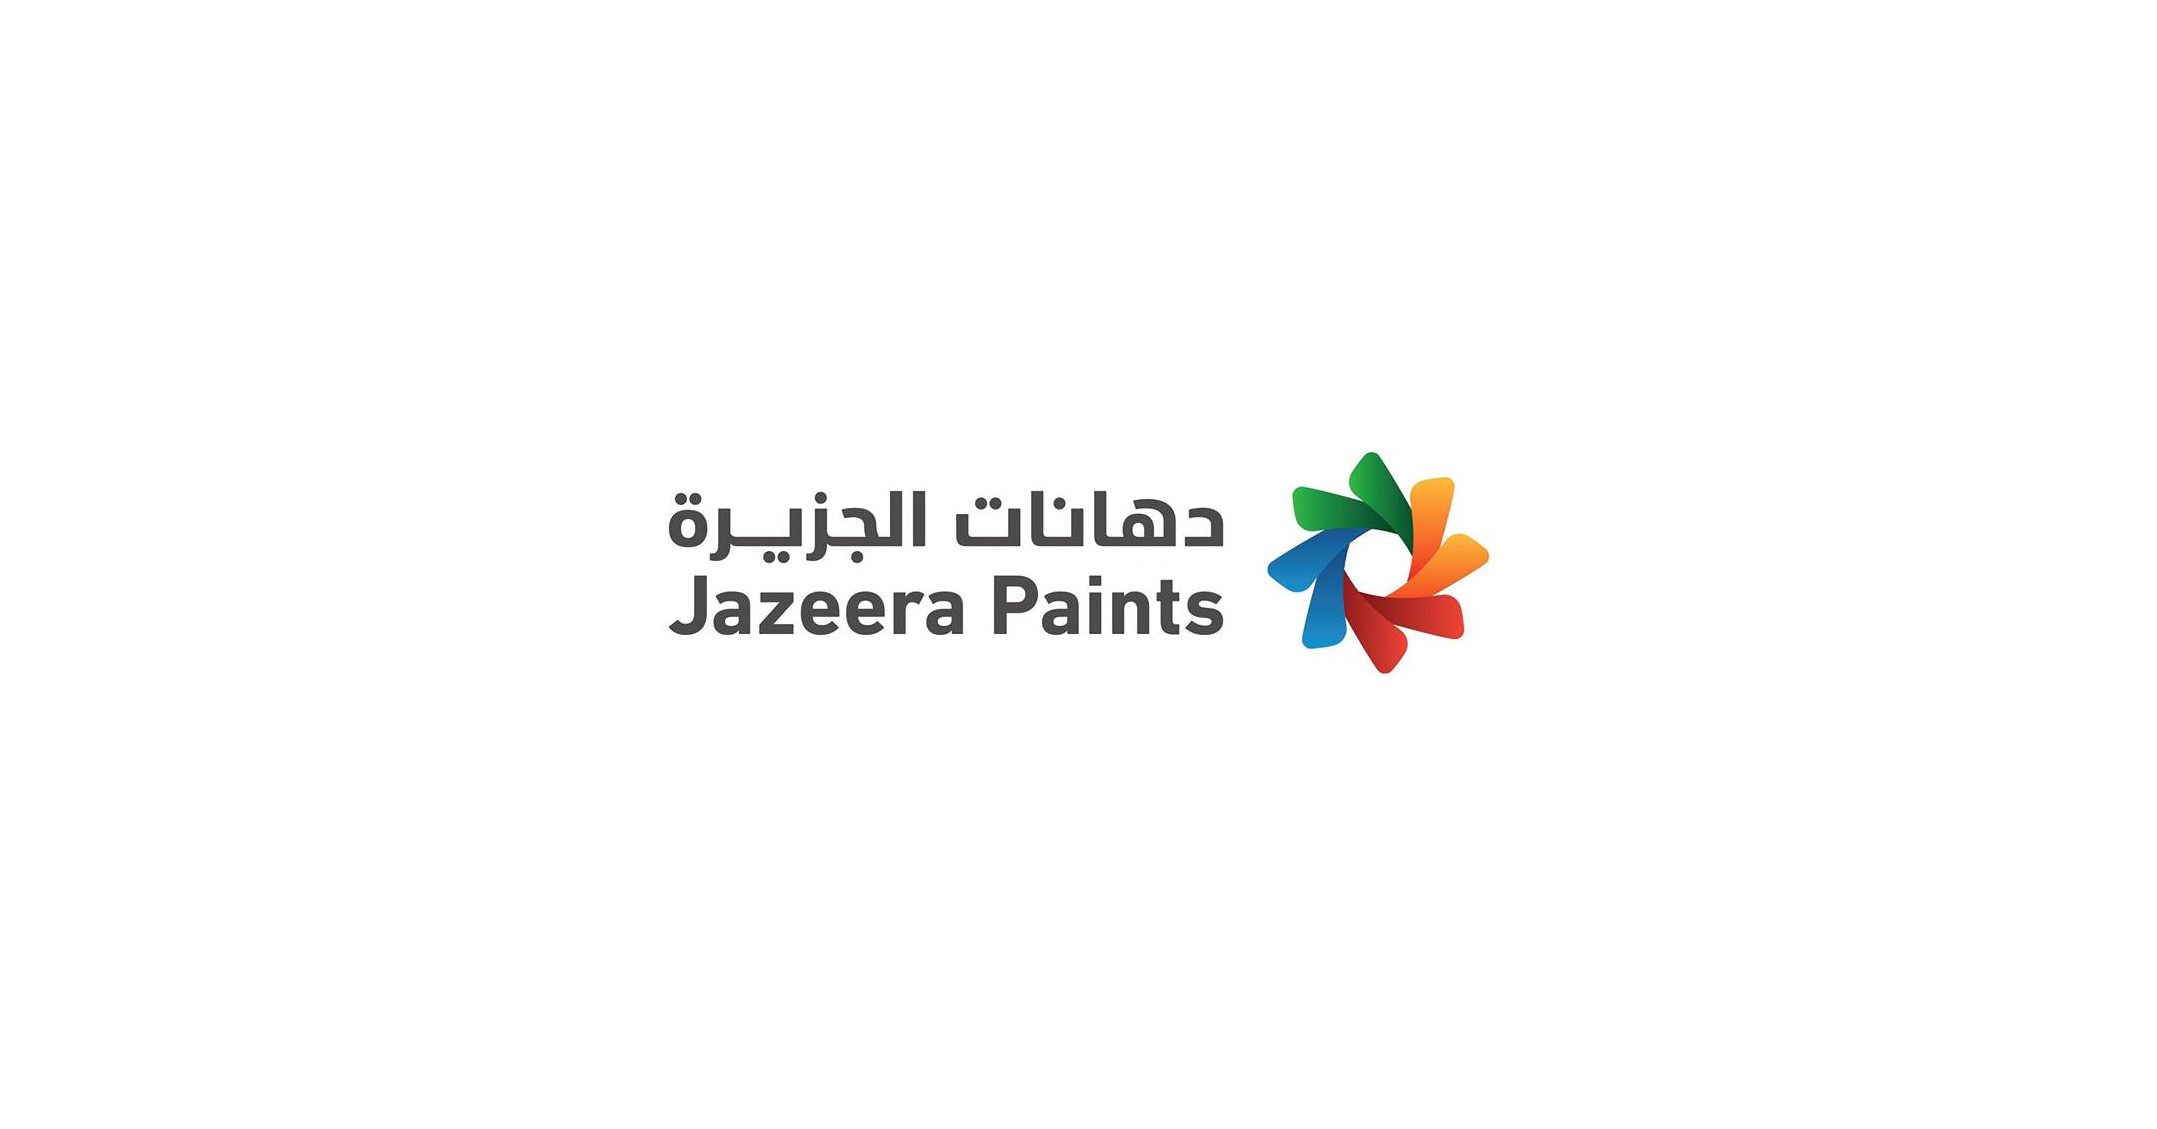 صورة Job: R&D Wood Coating Supervisor ( Paints Experience is must ) at Jazeera Paints in Cairo, Egypt